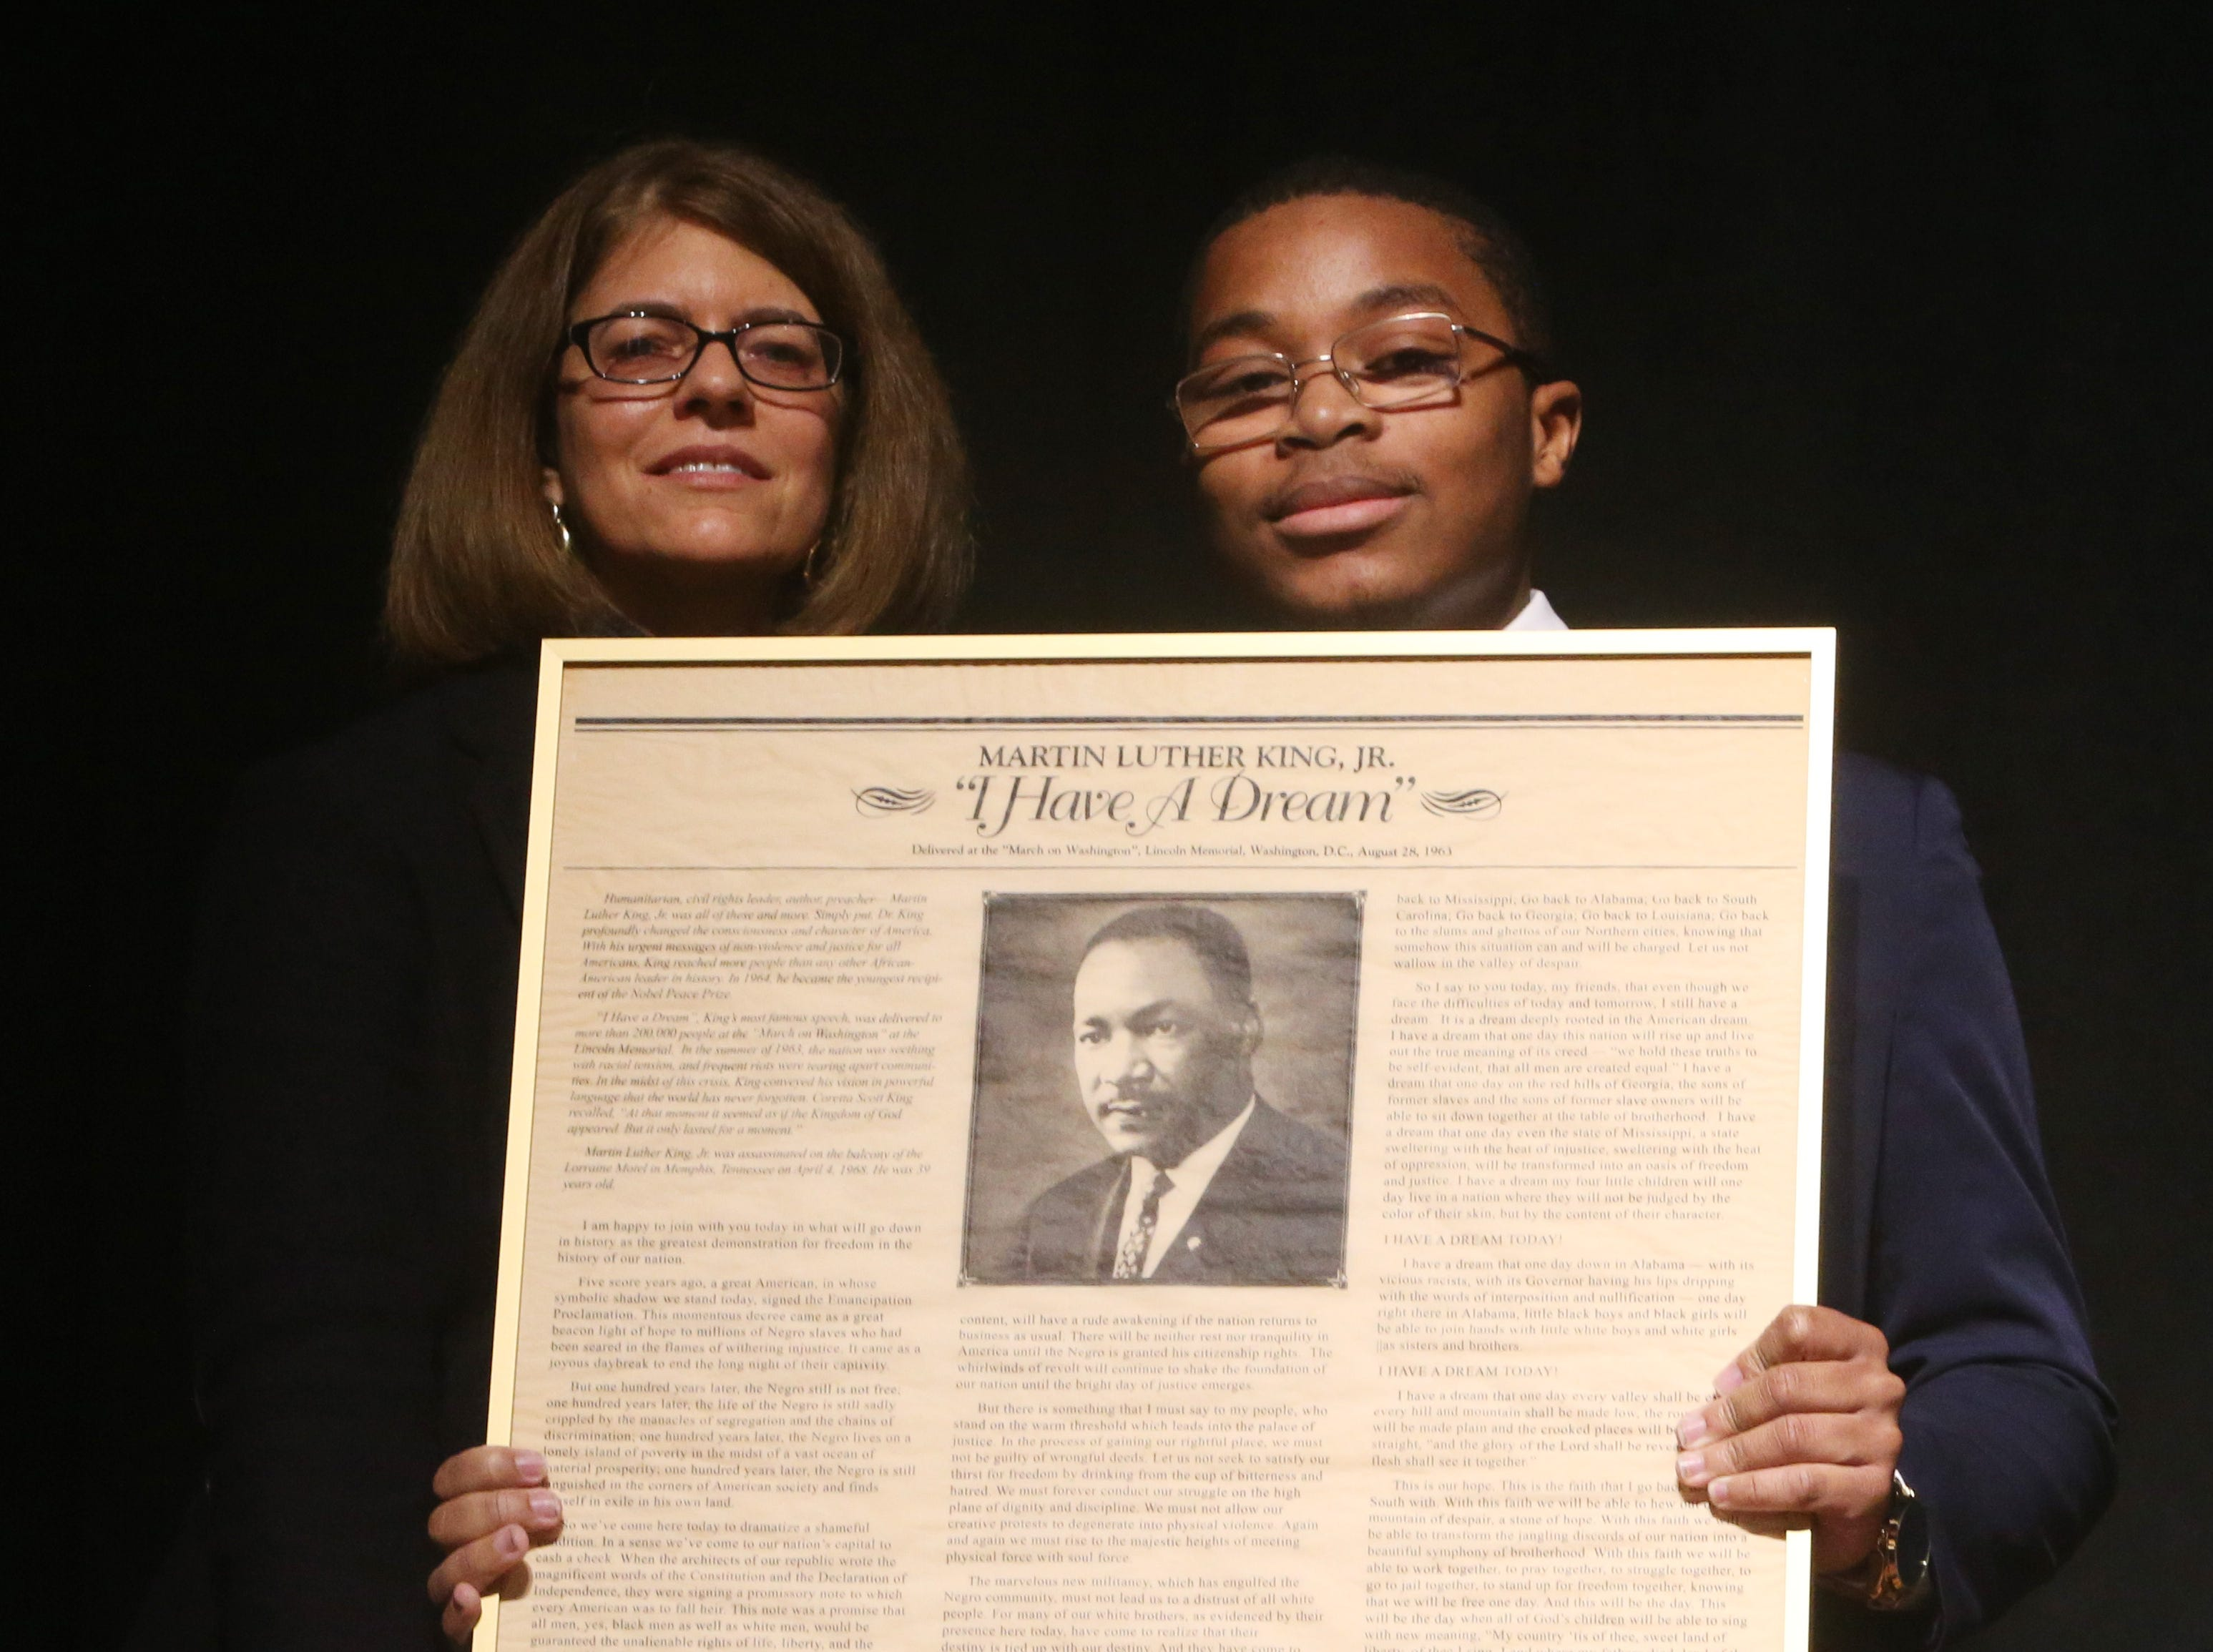 Youth honoree Richmond N. Addae receives his award from Trish Prunty of the Roosevelt Institute during the Martin Luther King Jr. Breakfast in the City of Poughkeepsie on January 25, 2019.